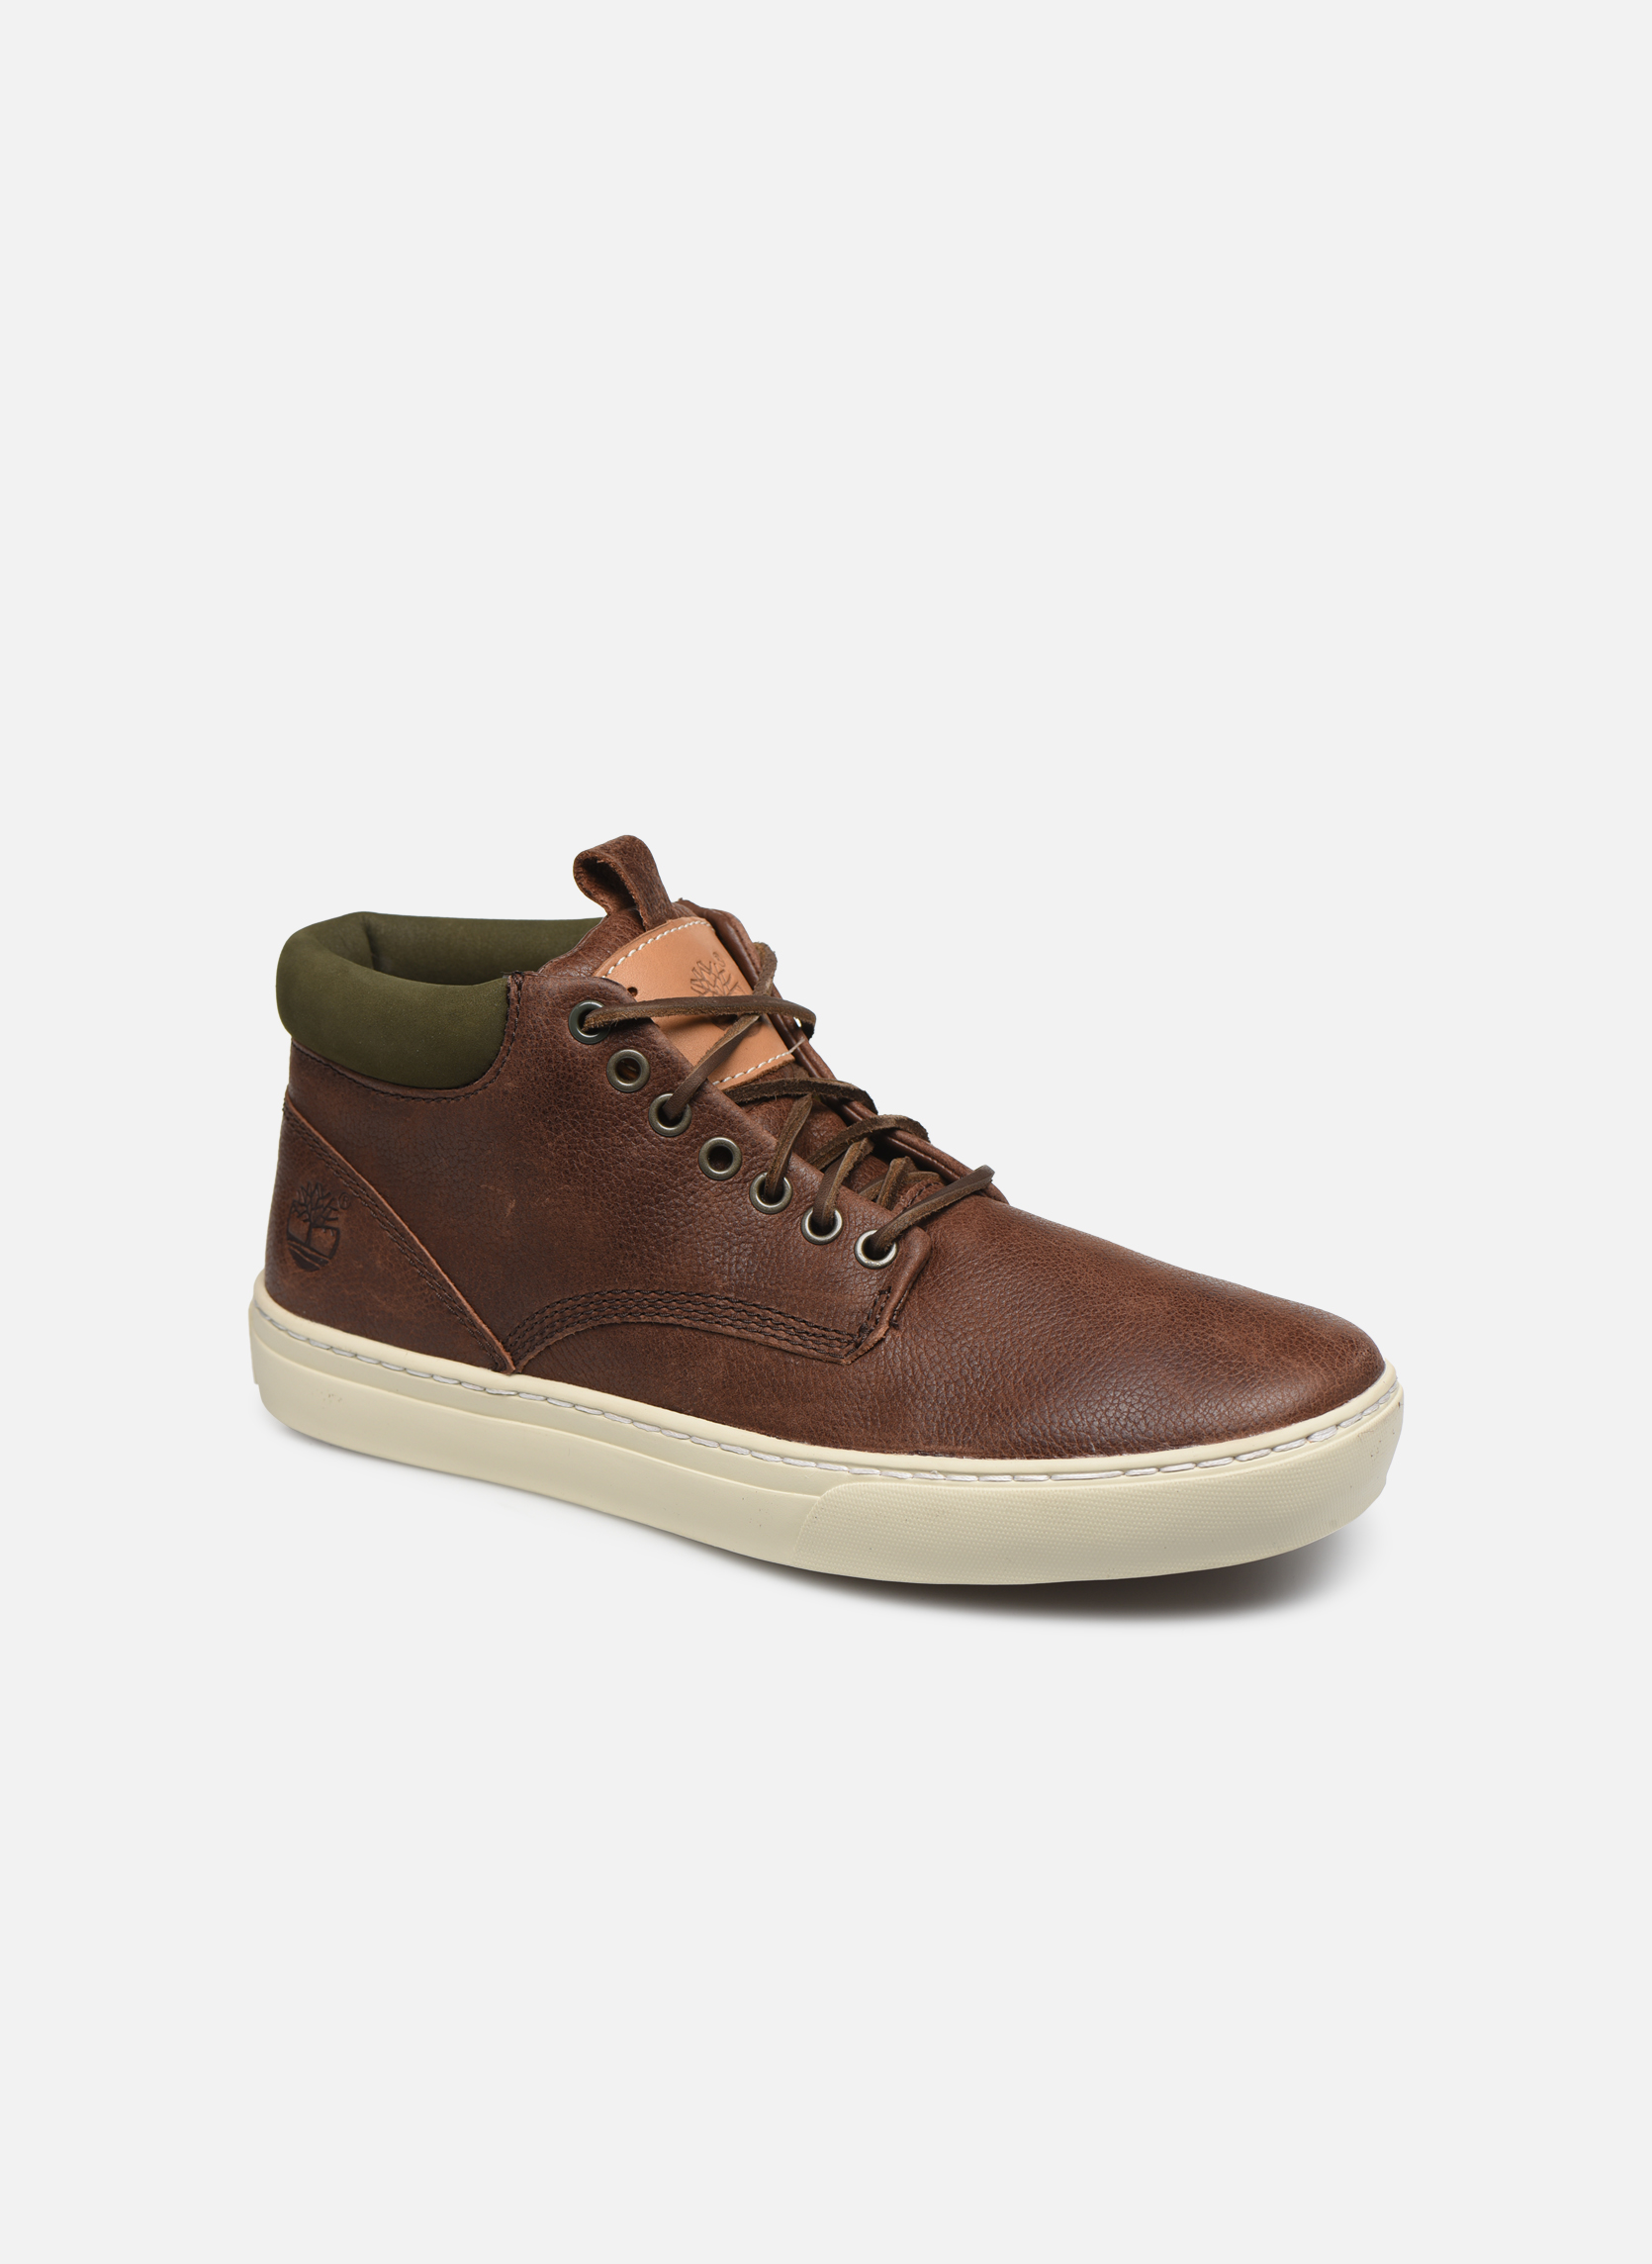 Trainers Men Earthkeepers 2.0 Cupsole Chukka